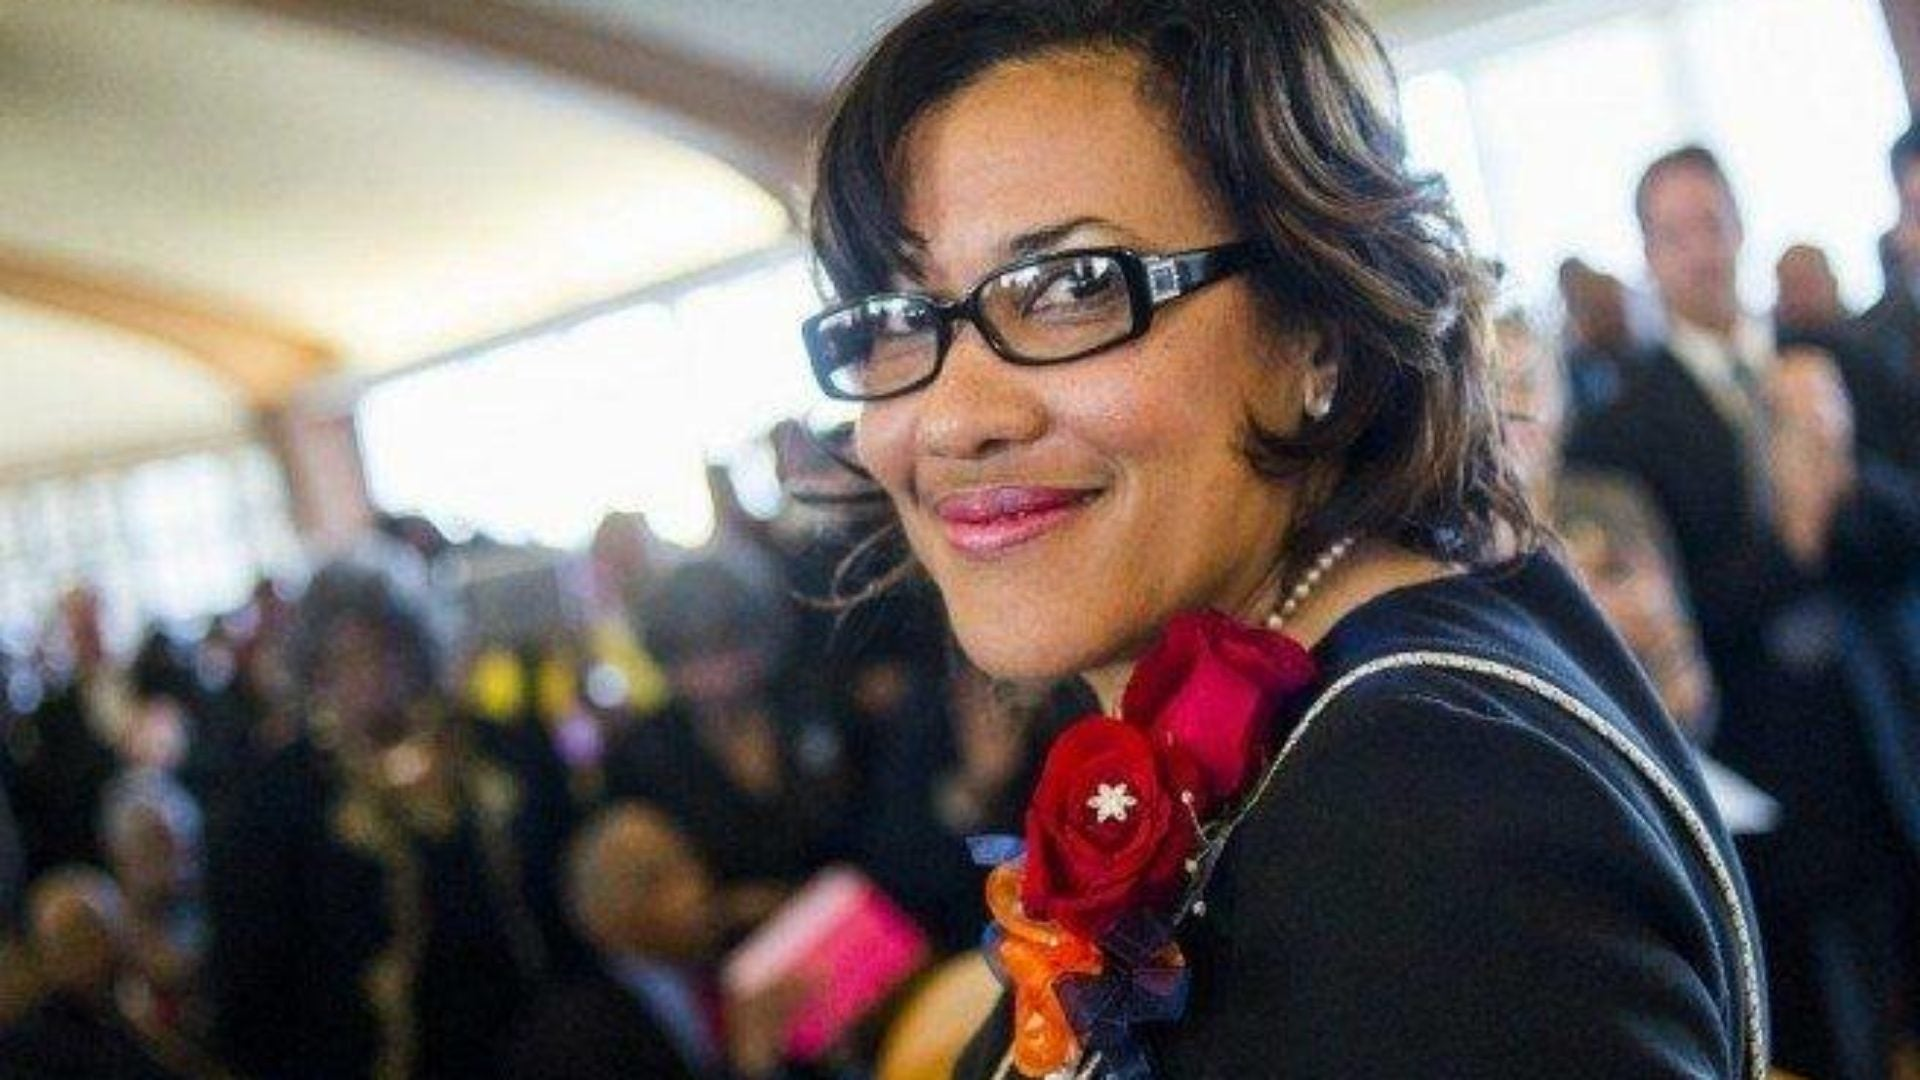 Karen Weaver, Mayor Of Flint, Mich., Is Focused On Getting Clean Water And Economic Opportunity To Her People